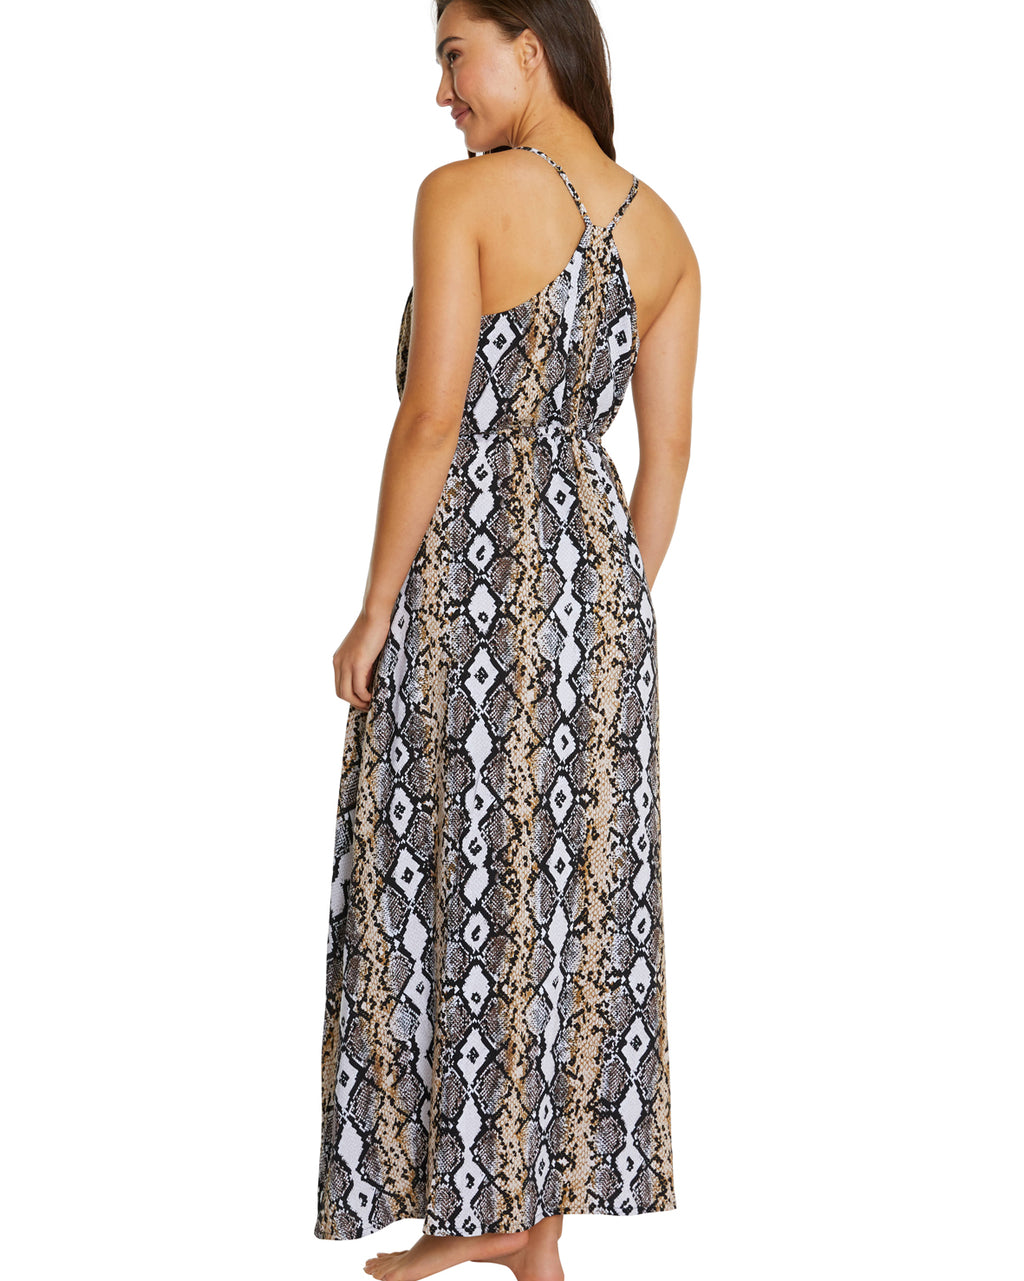 GONDWANA MAXI DRESS